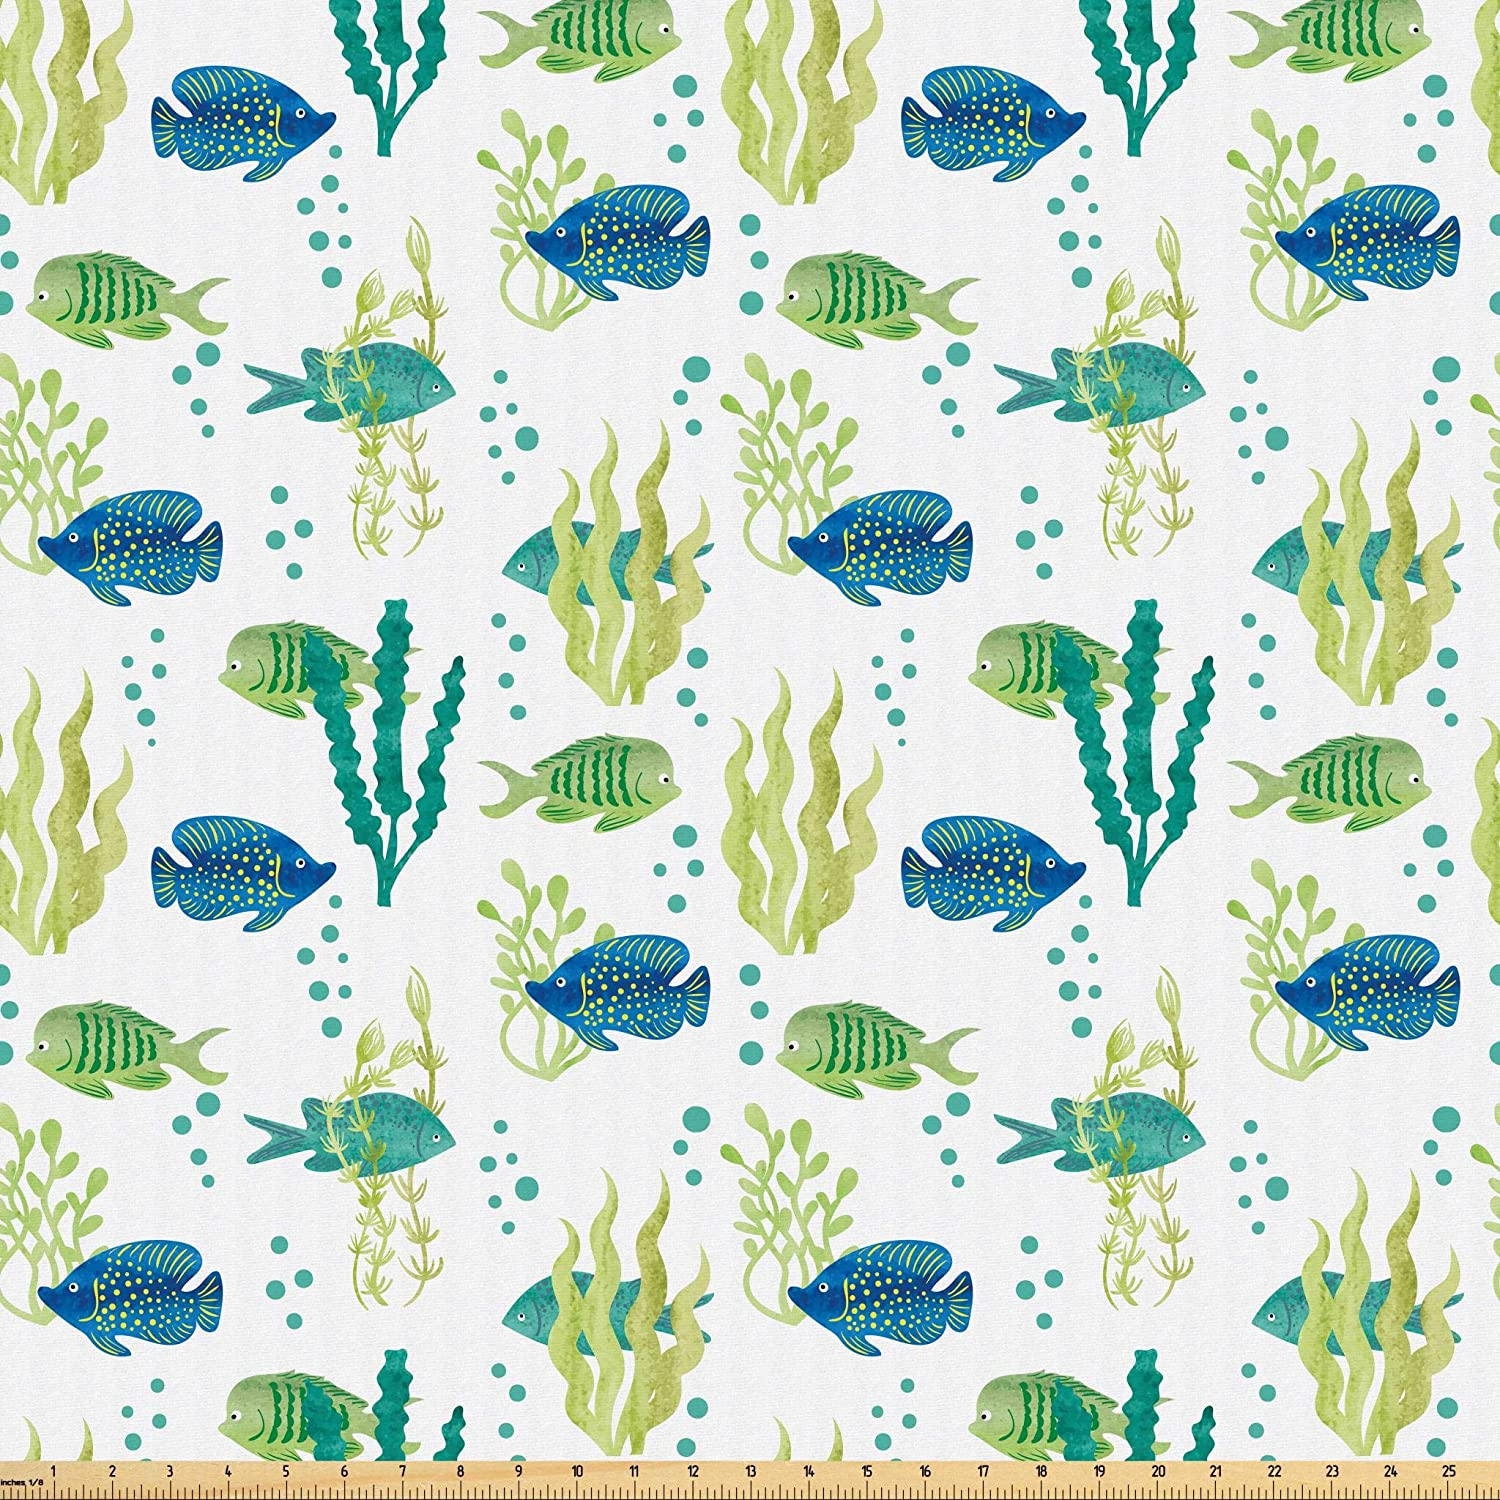 Lunarable Aquarium Fabric by The Yard, Different Tropical Fish and Seaweeds Exotic Marine Watercolor Artwork, Microfiber Fabric for Arts and Crafts Textiles & Decor, 1 Yard, Avocado Green